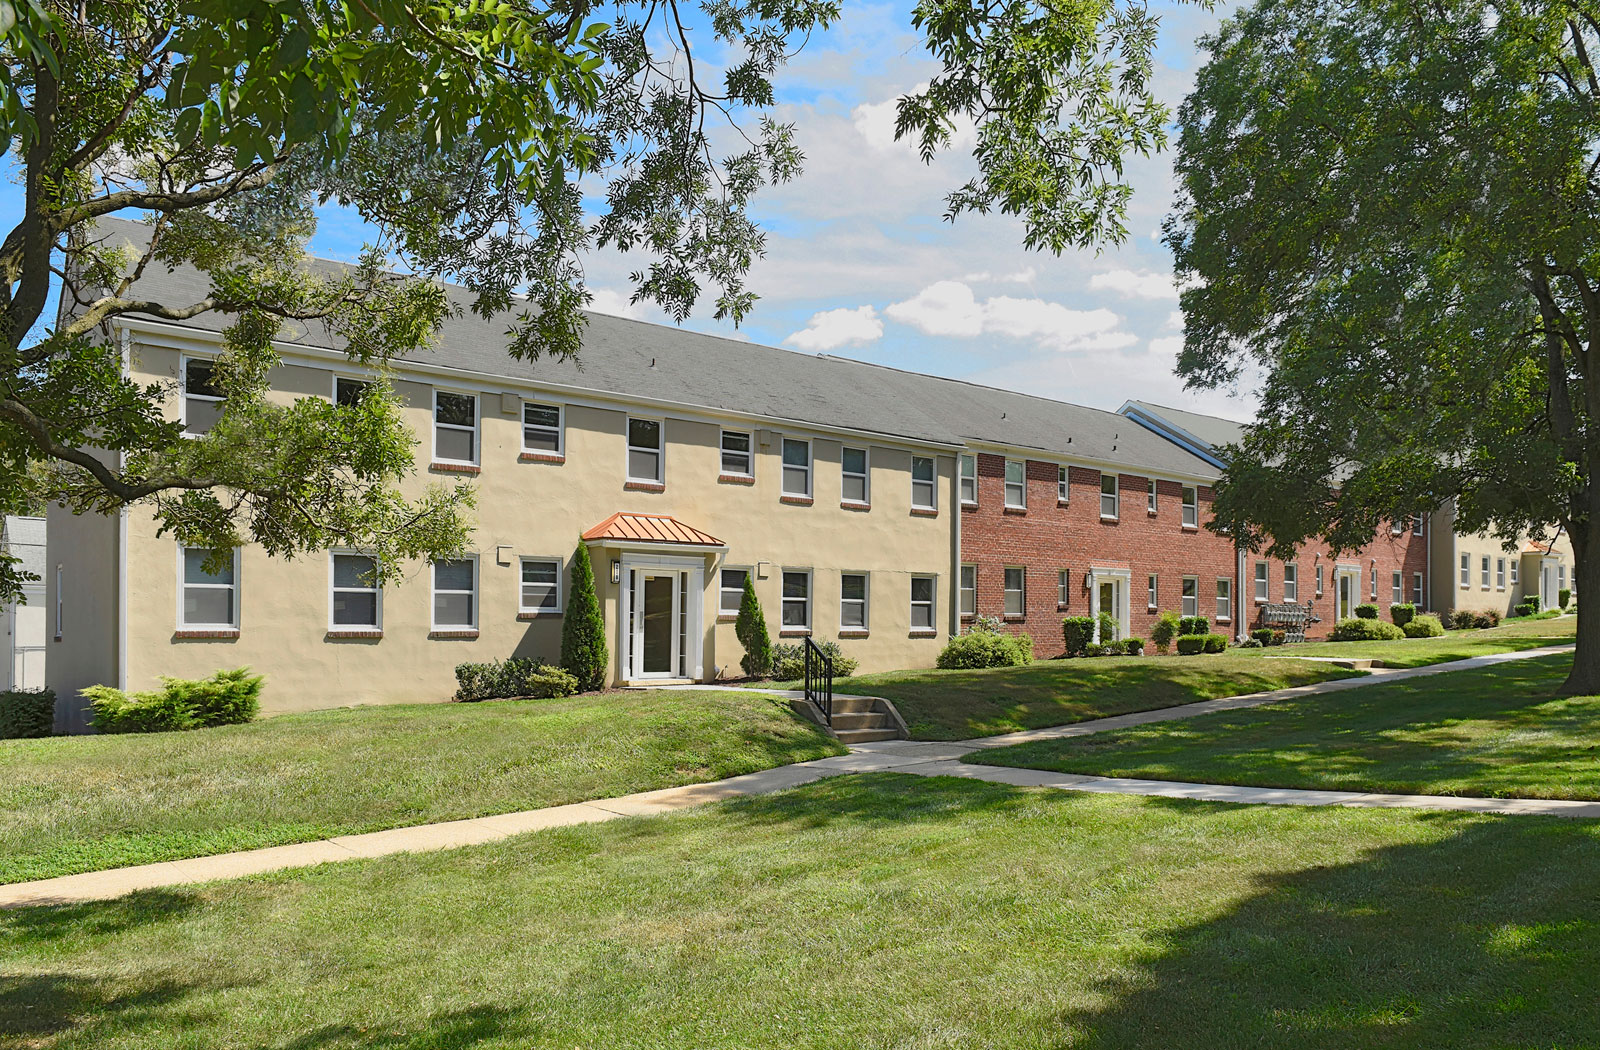 20 best apartments for rent in woodlawn, md from $830!